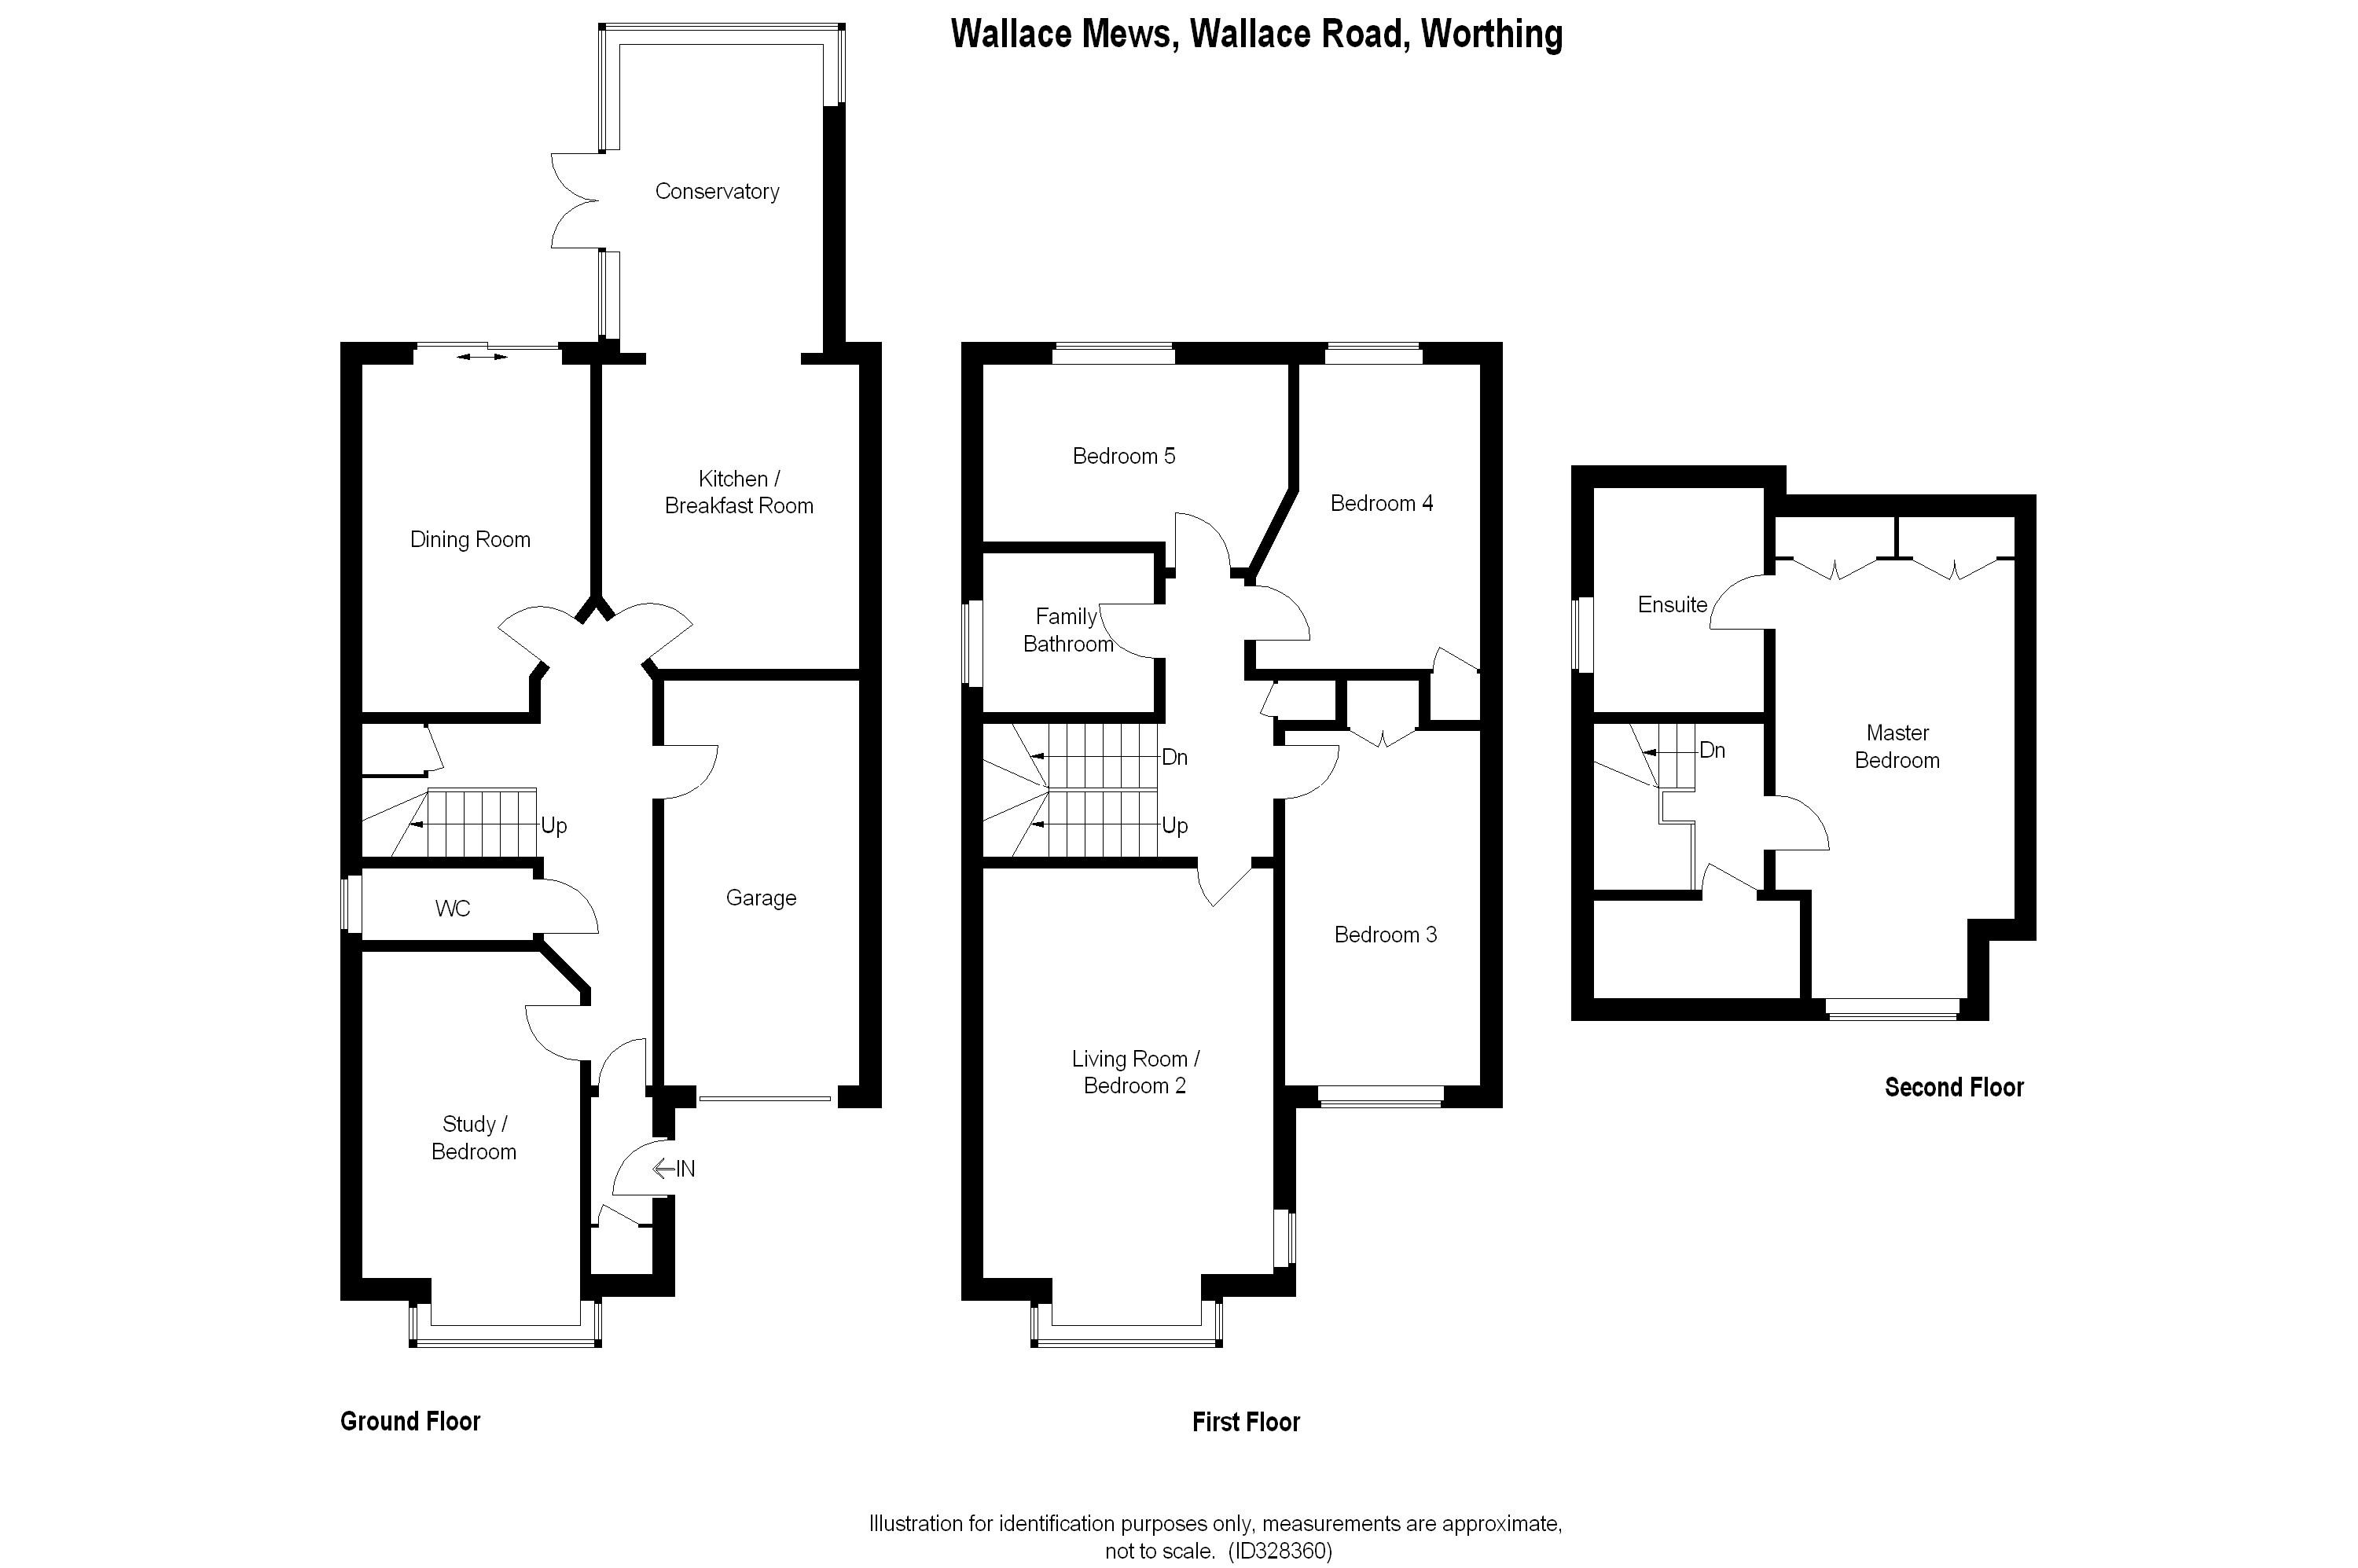 5 bed semi detached house for sale in wallace mews for 15 bruyeres mews floor plans